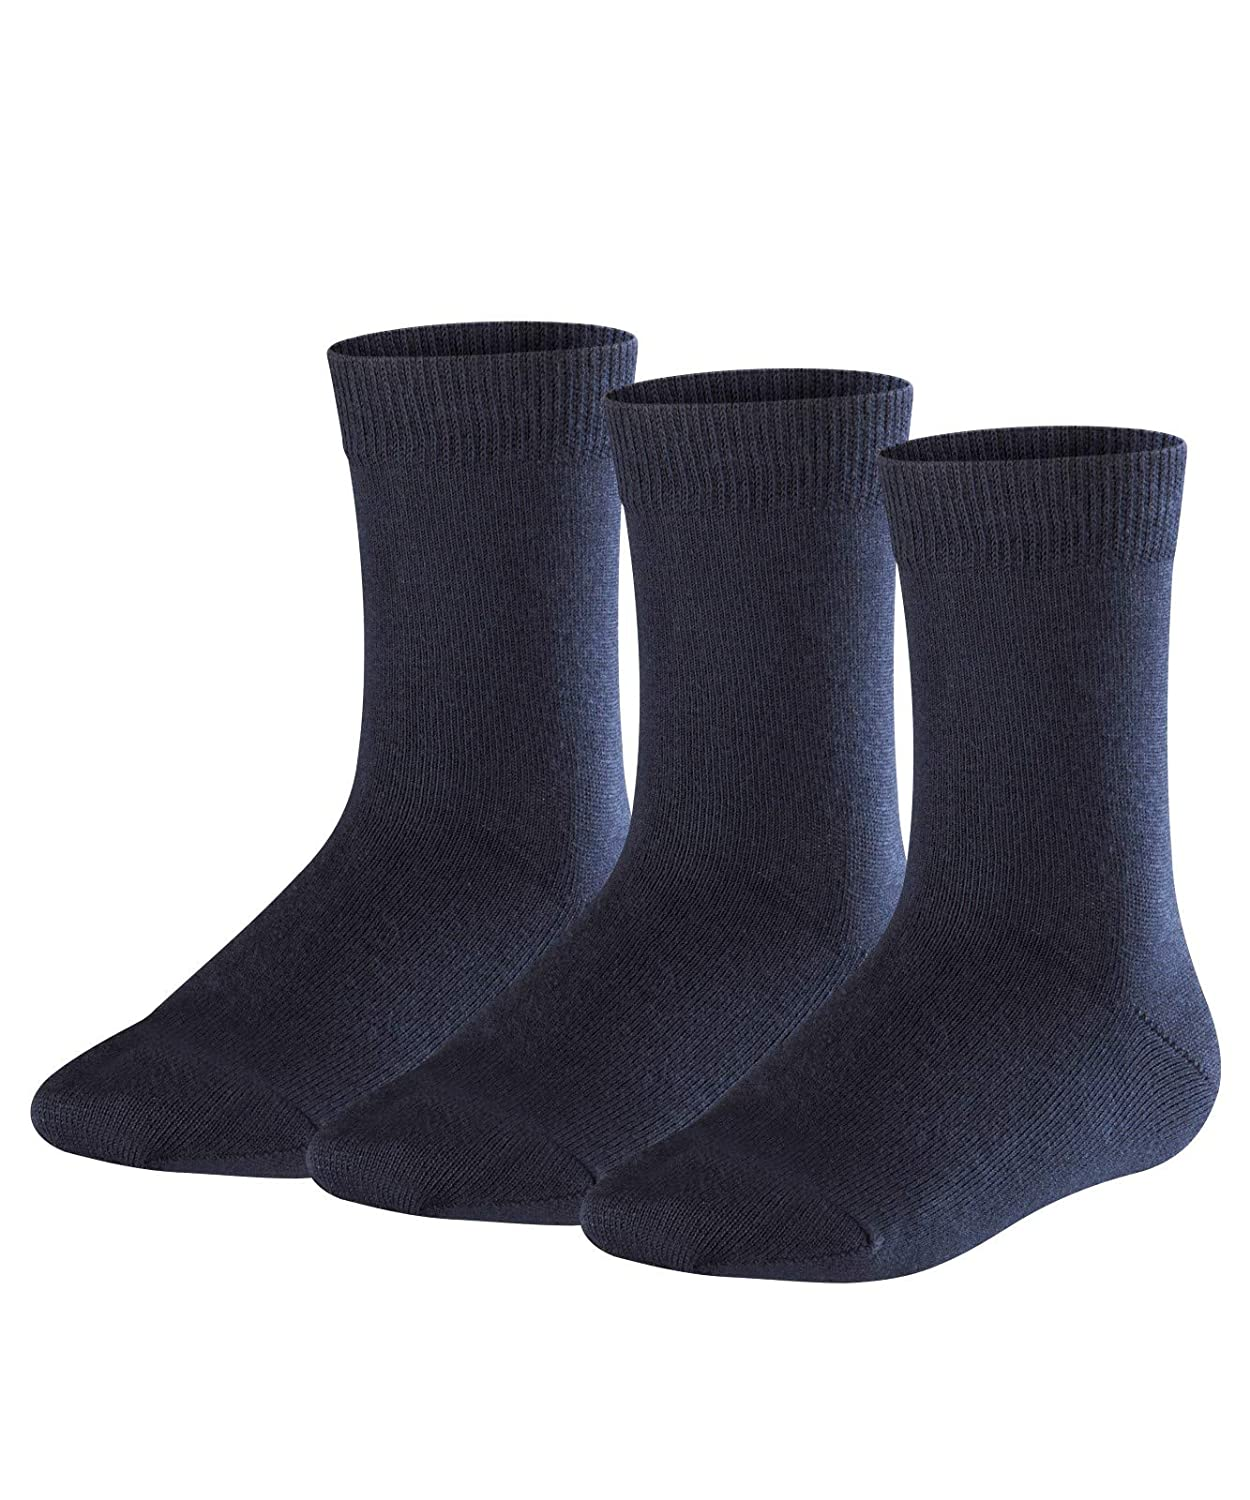 cotton mix kid EU 19-42 reinforced stress zones for optimum durability UK sizes 3 3  pairs - 8 FALKE Kids Family 3-Pack socks multiple colours Year round cotton quality